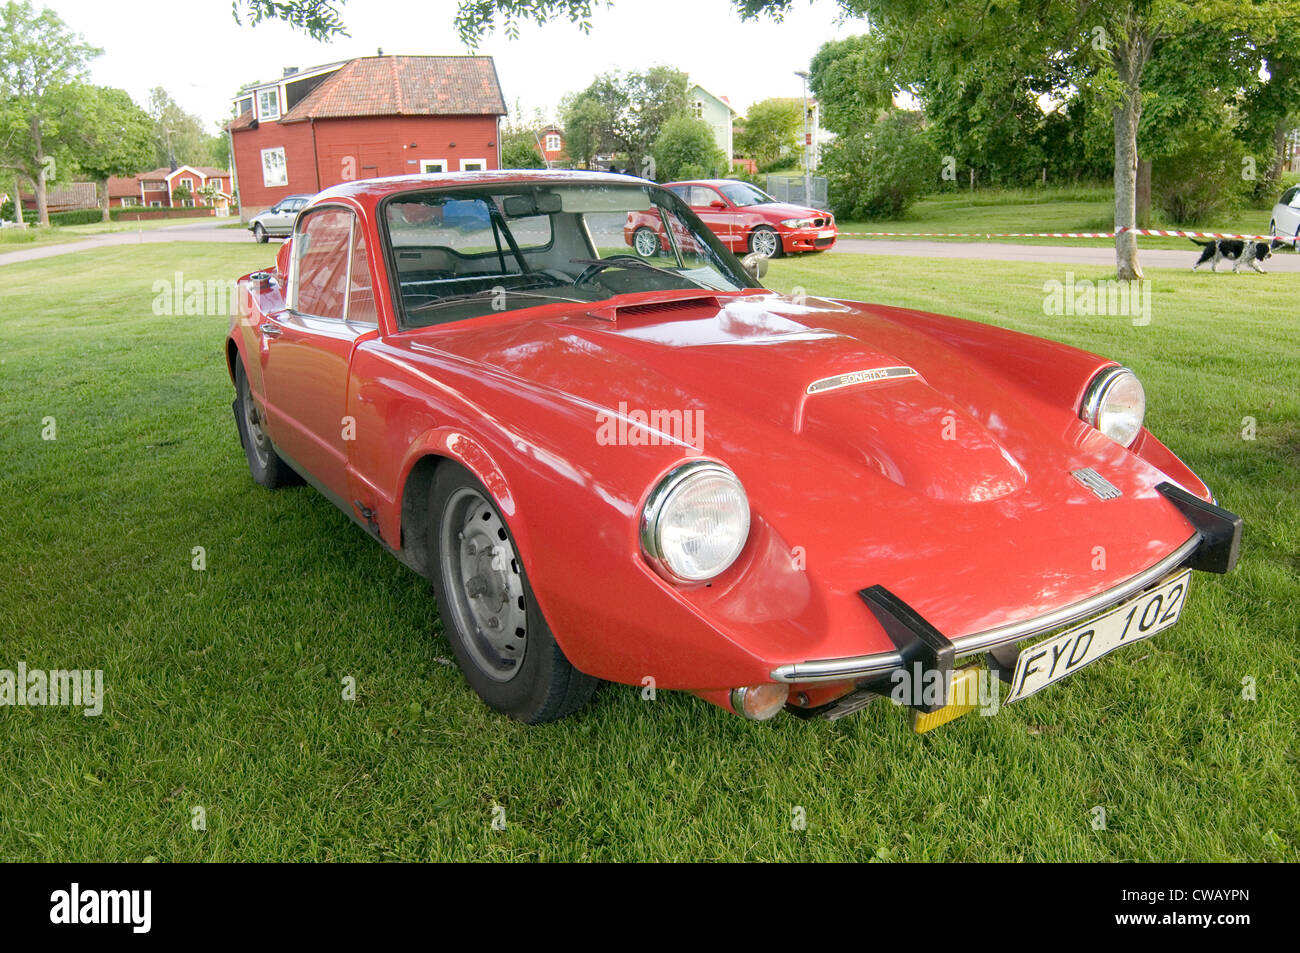 Saab Sonnet Sports Car 1960 Classic Cars